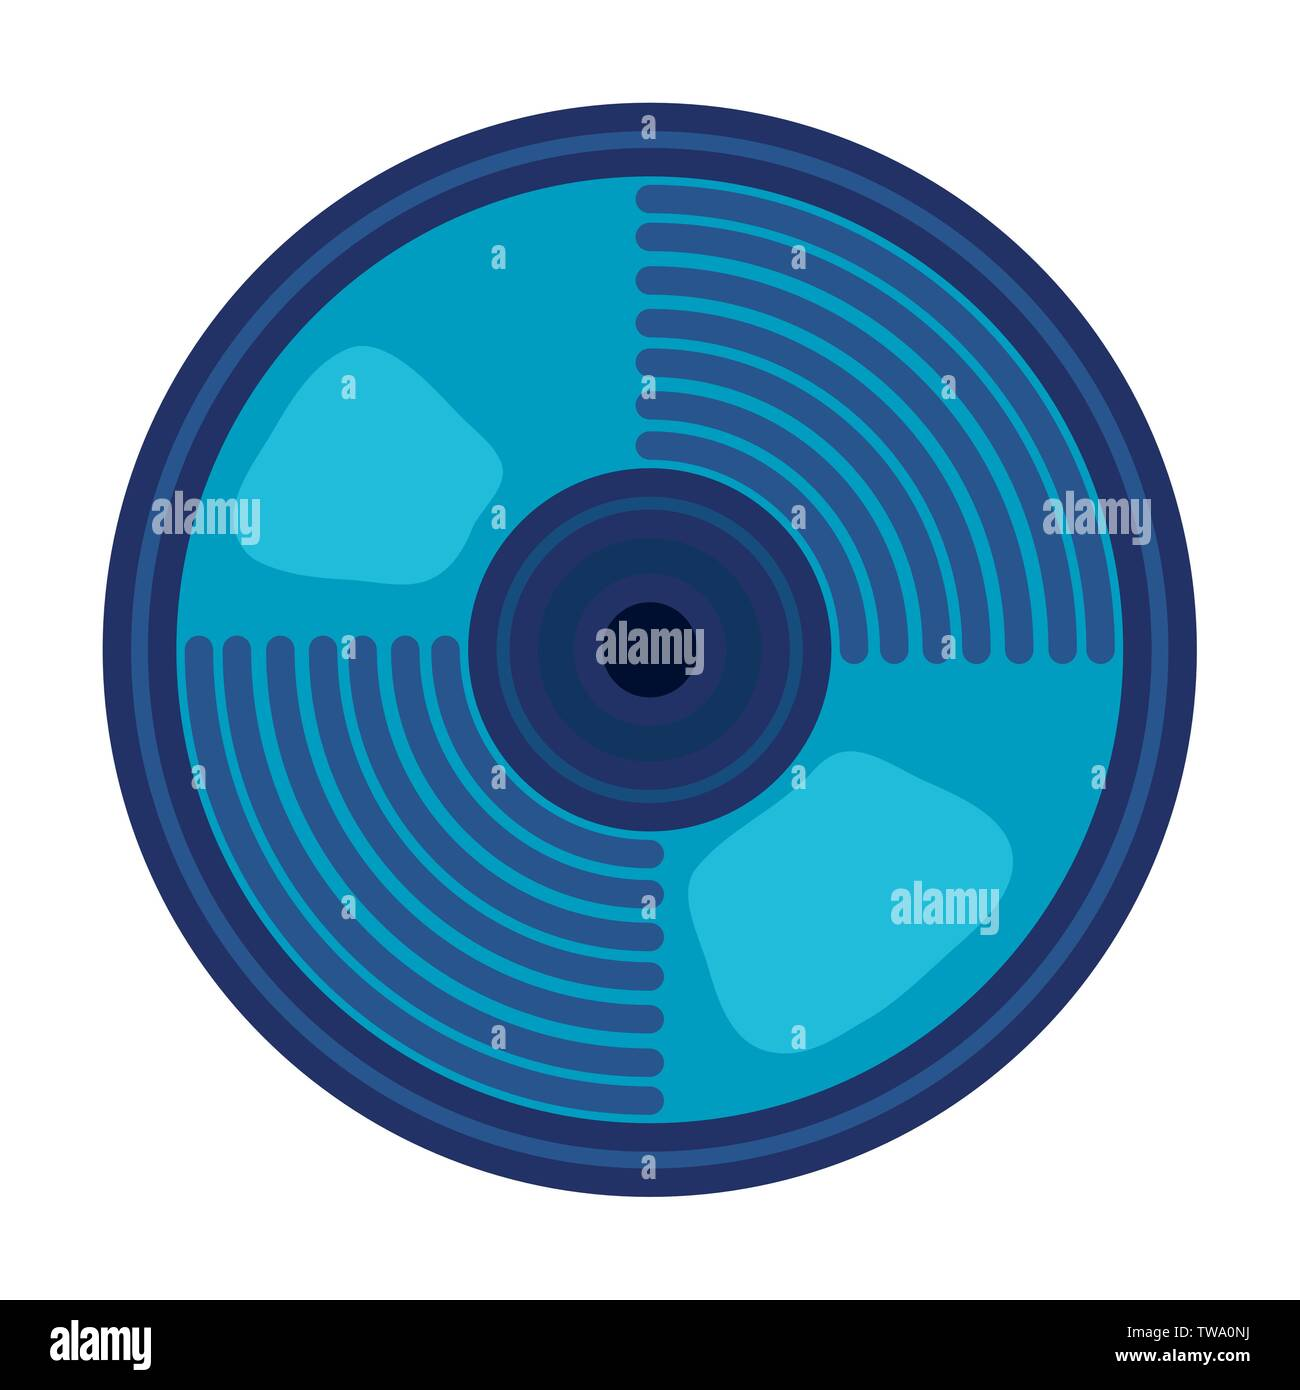 compact disk audio device icon - Stock Image